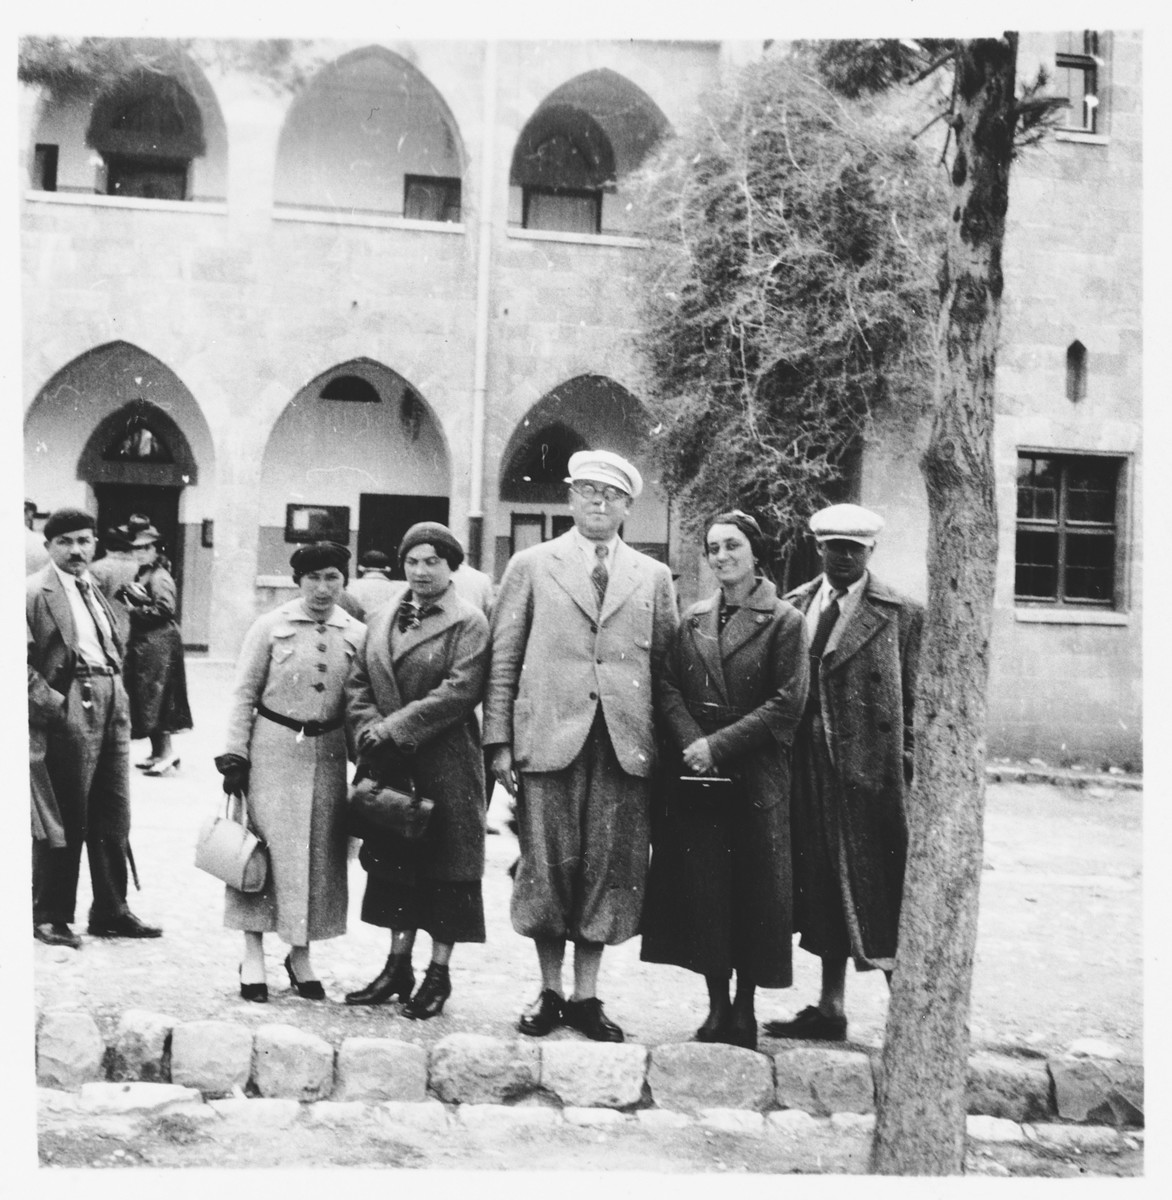 A group of Jews from Osijek, Croatia visit Palestine during the 1935 Maccabi games.  Among those pictured is Ilonka Spitzer (second from the right).